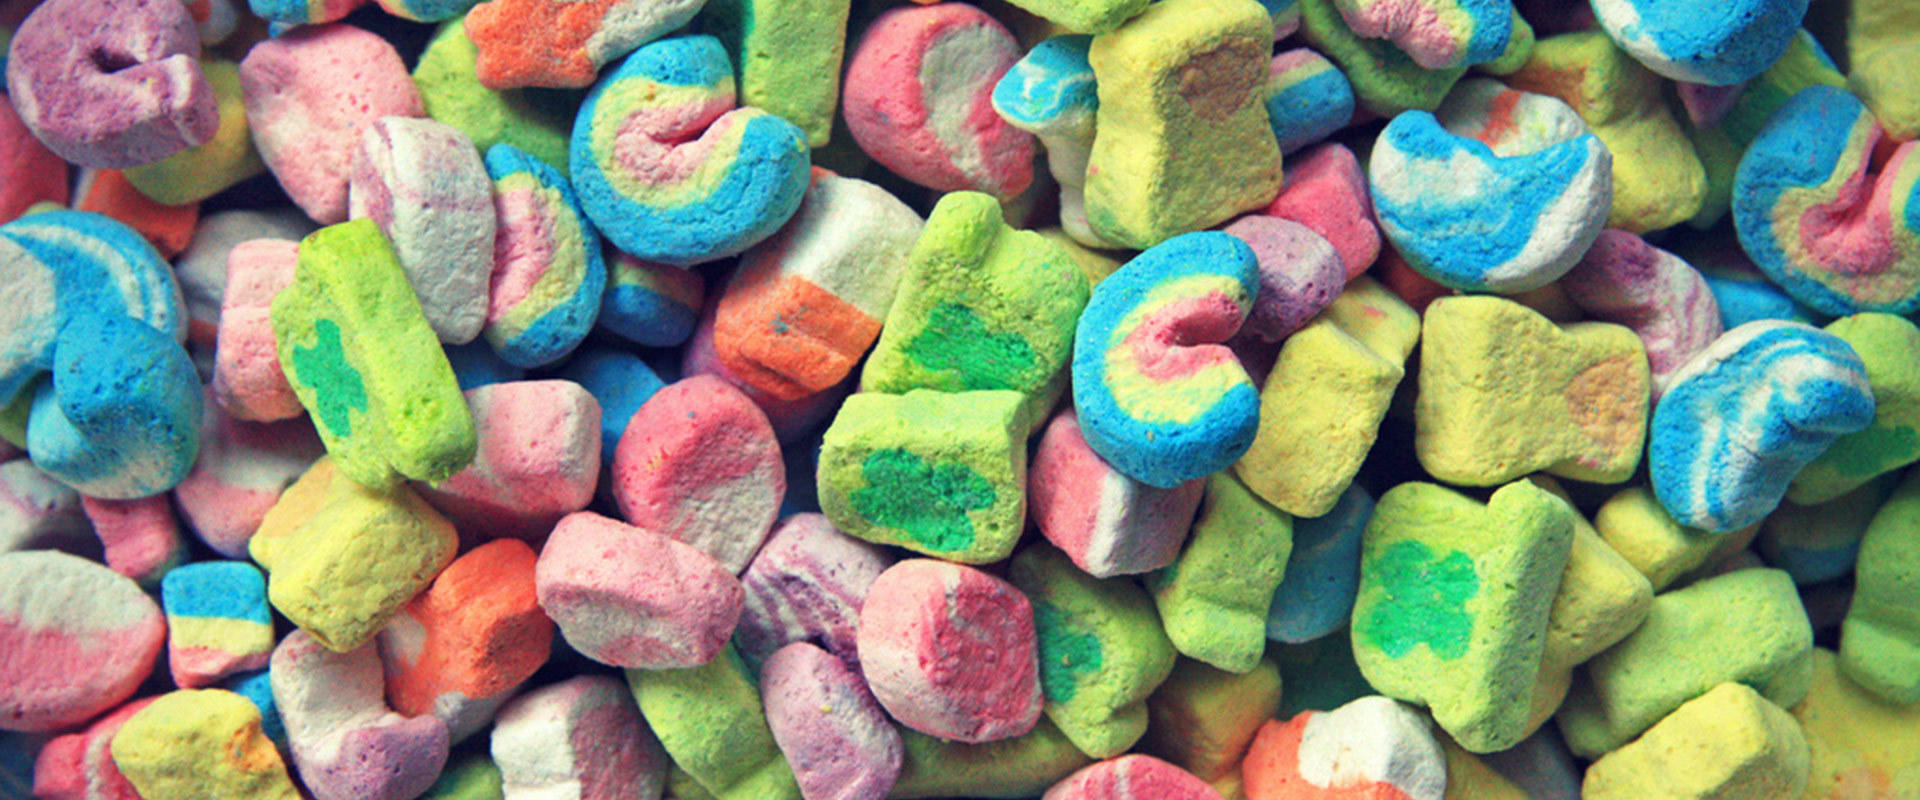 Just Lucky Charms Marshmallows